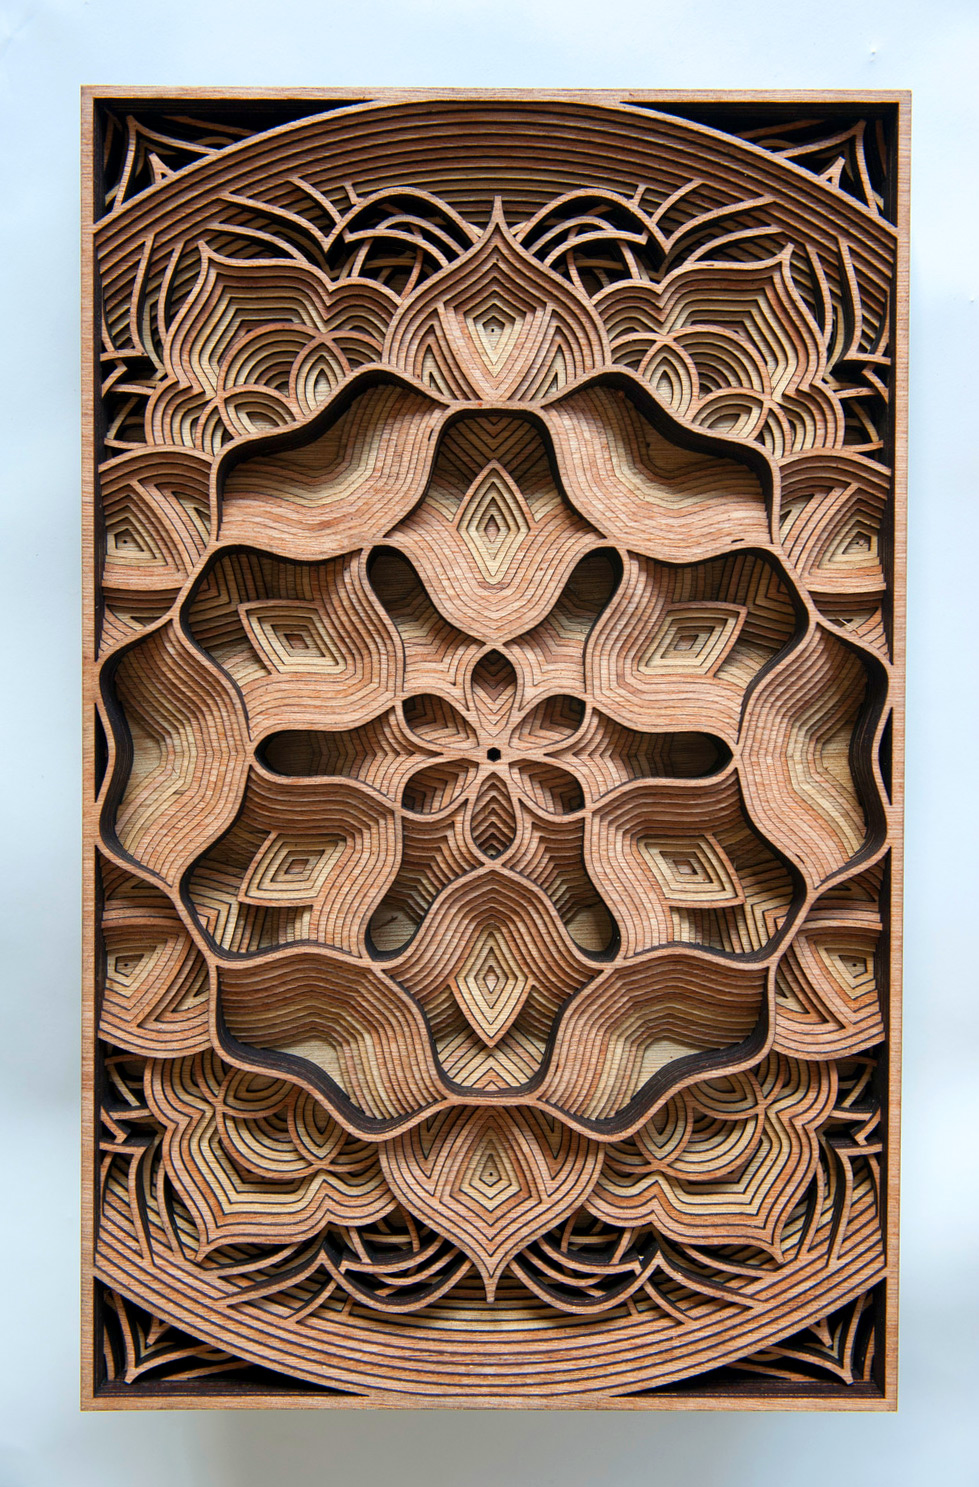 Laser cuts through wood relief sculptures by gabriel